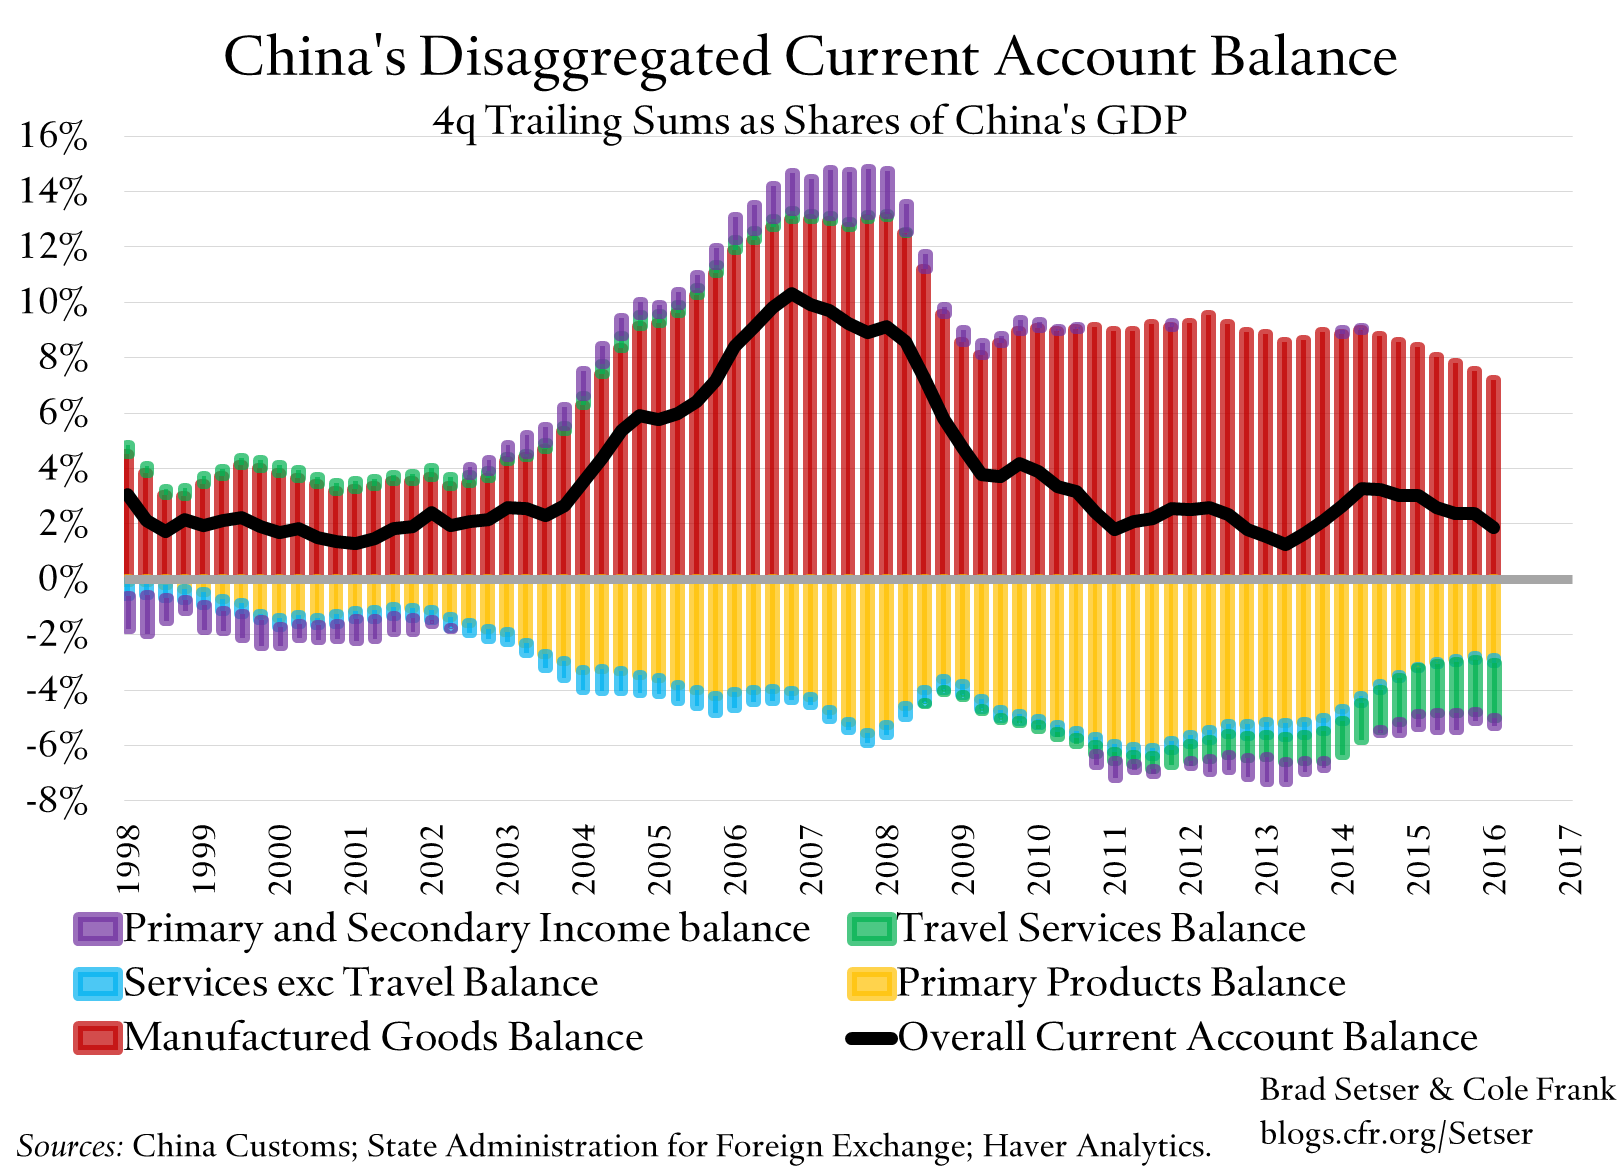 Why Did China's 2016 Current Account Surplus Fall?